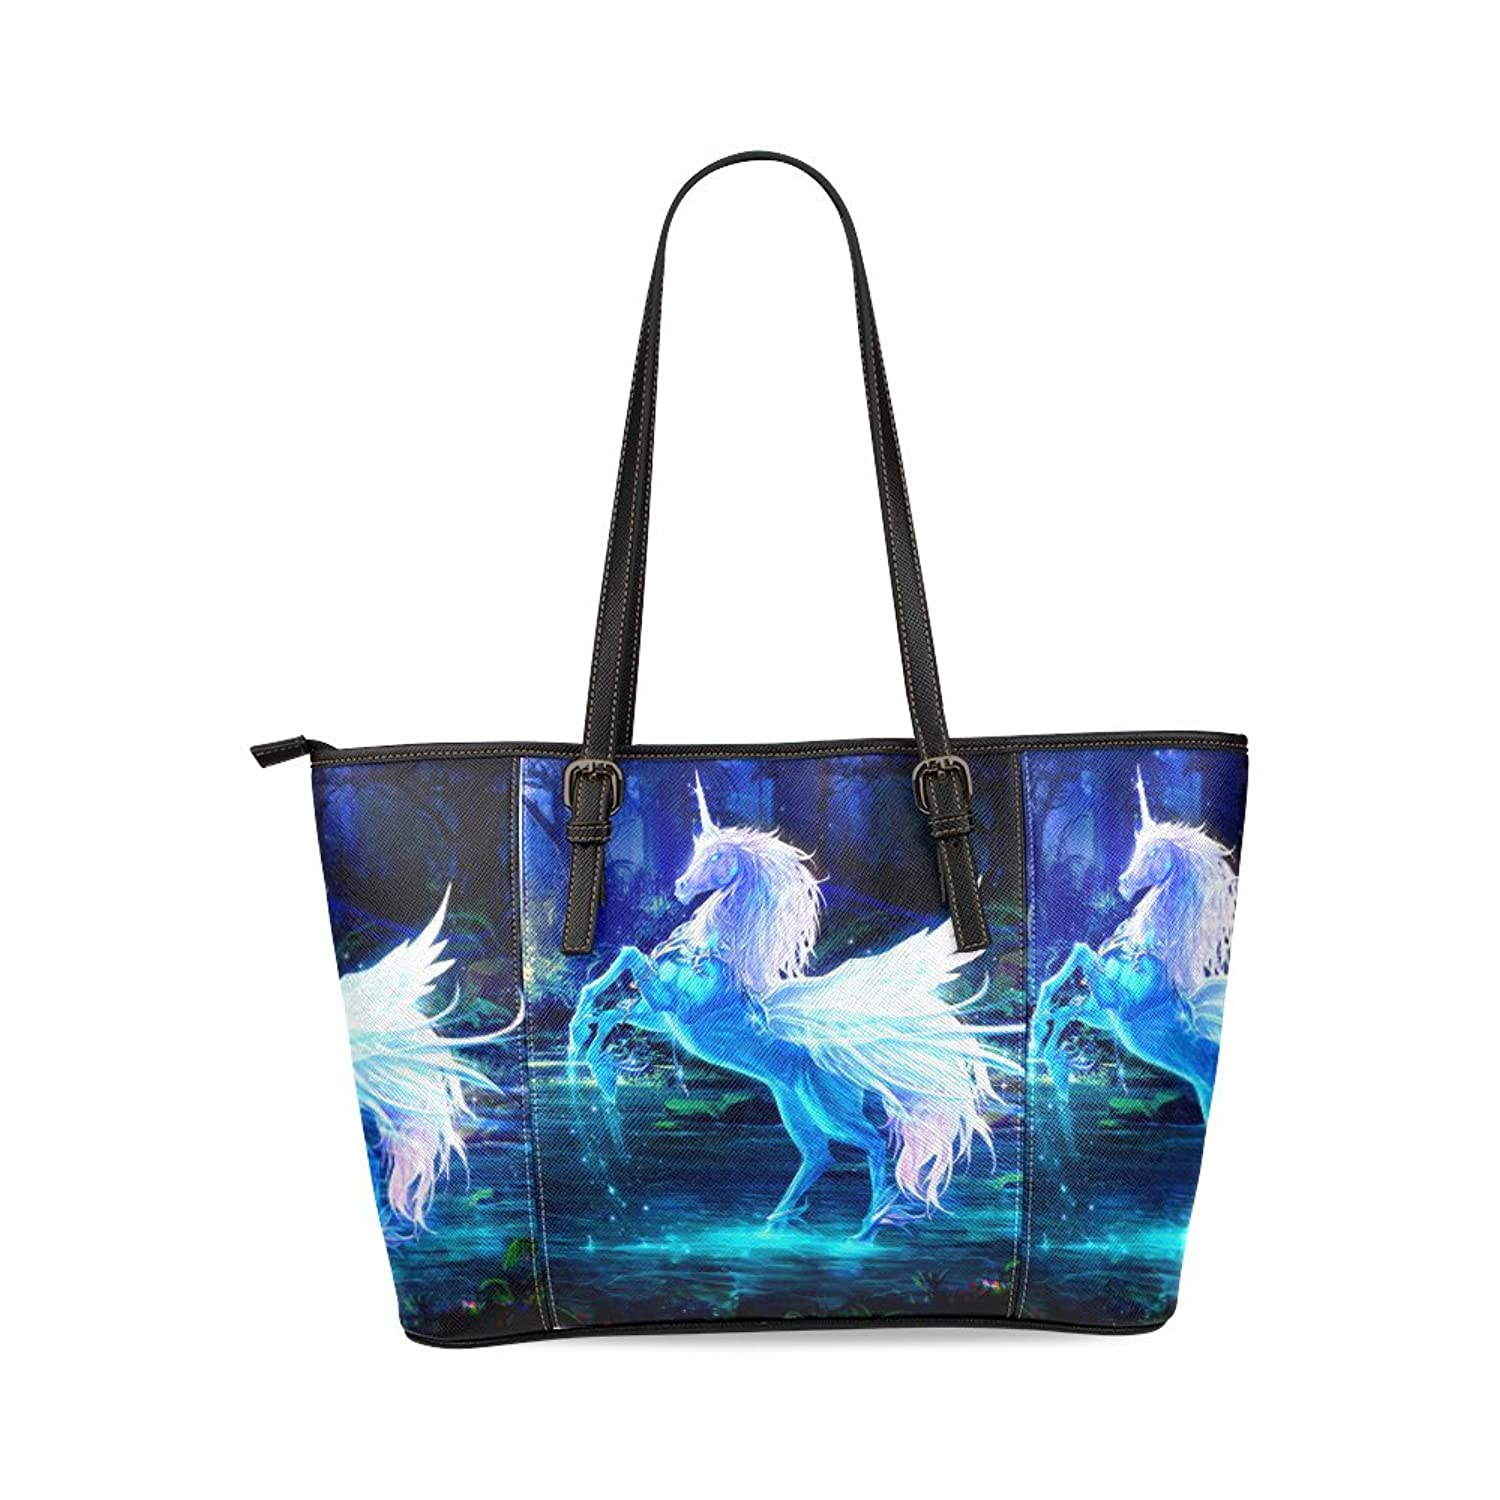 Unicorn Custom Women's PU Leather Large Tote Bag/Handbag/Shoulder Bag